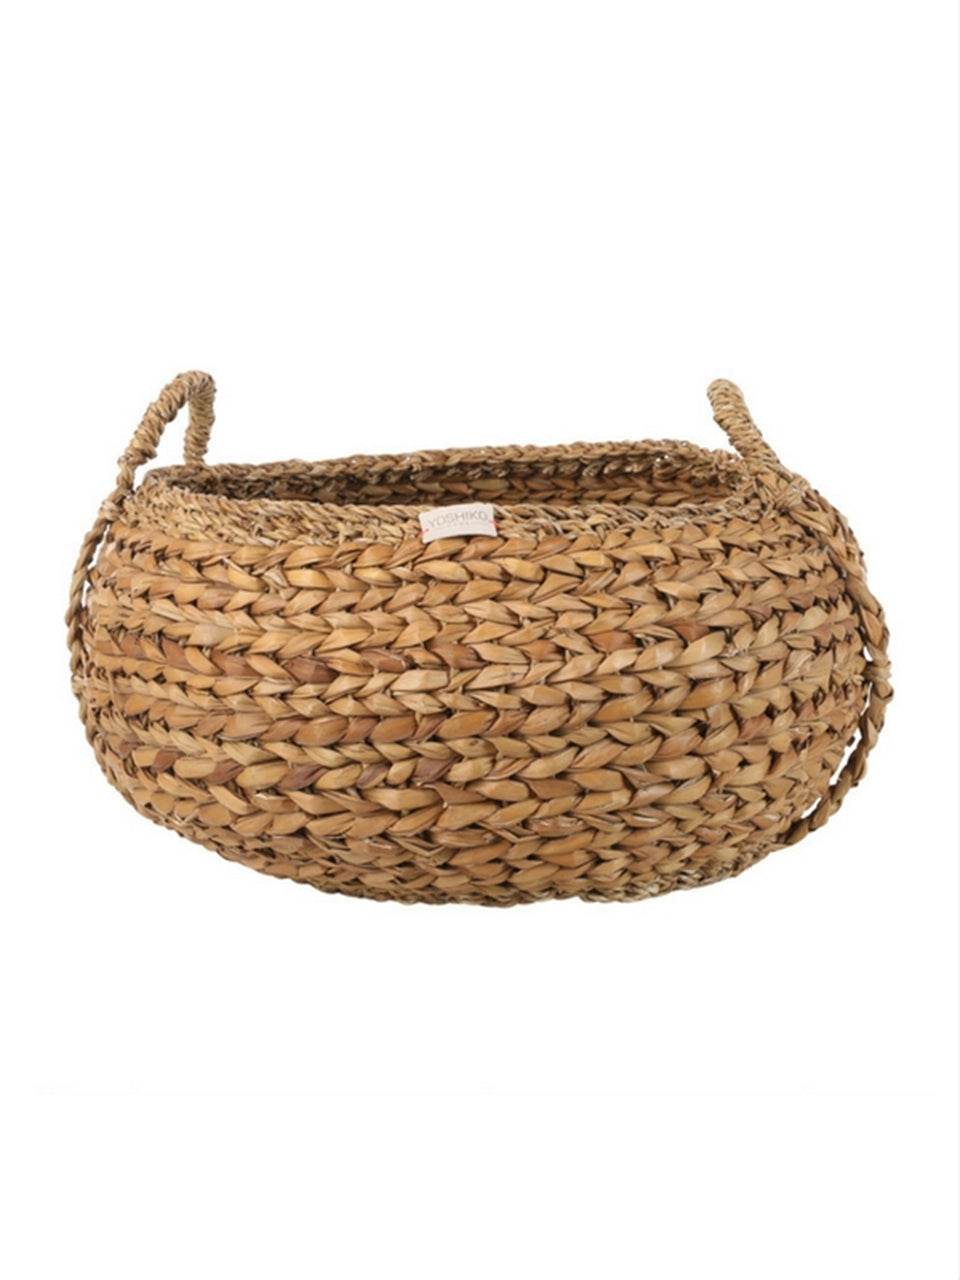 Set of 2 Kamala Seagrass Round Baskets - Natural